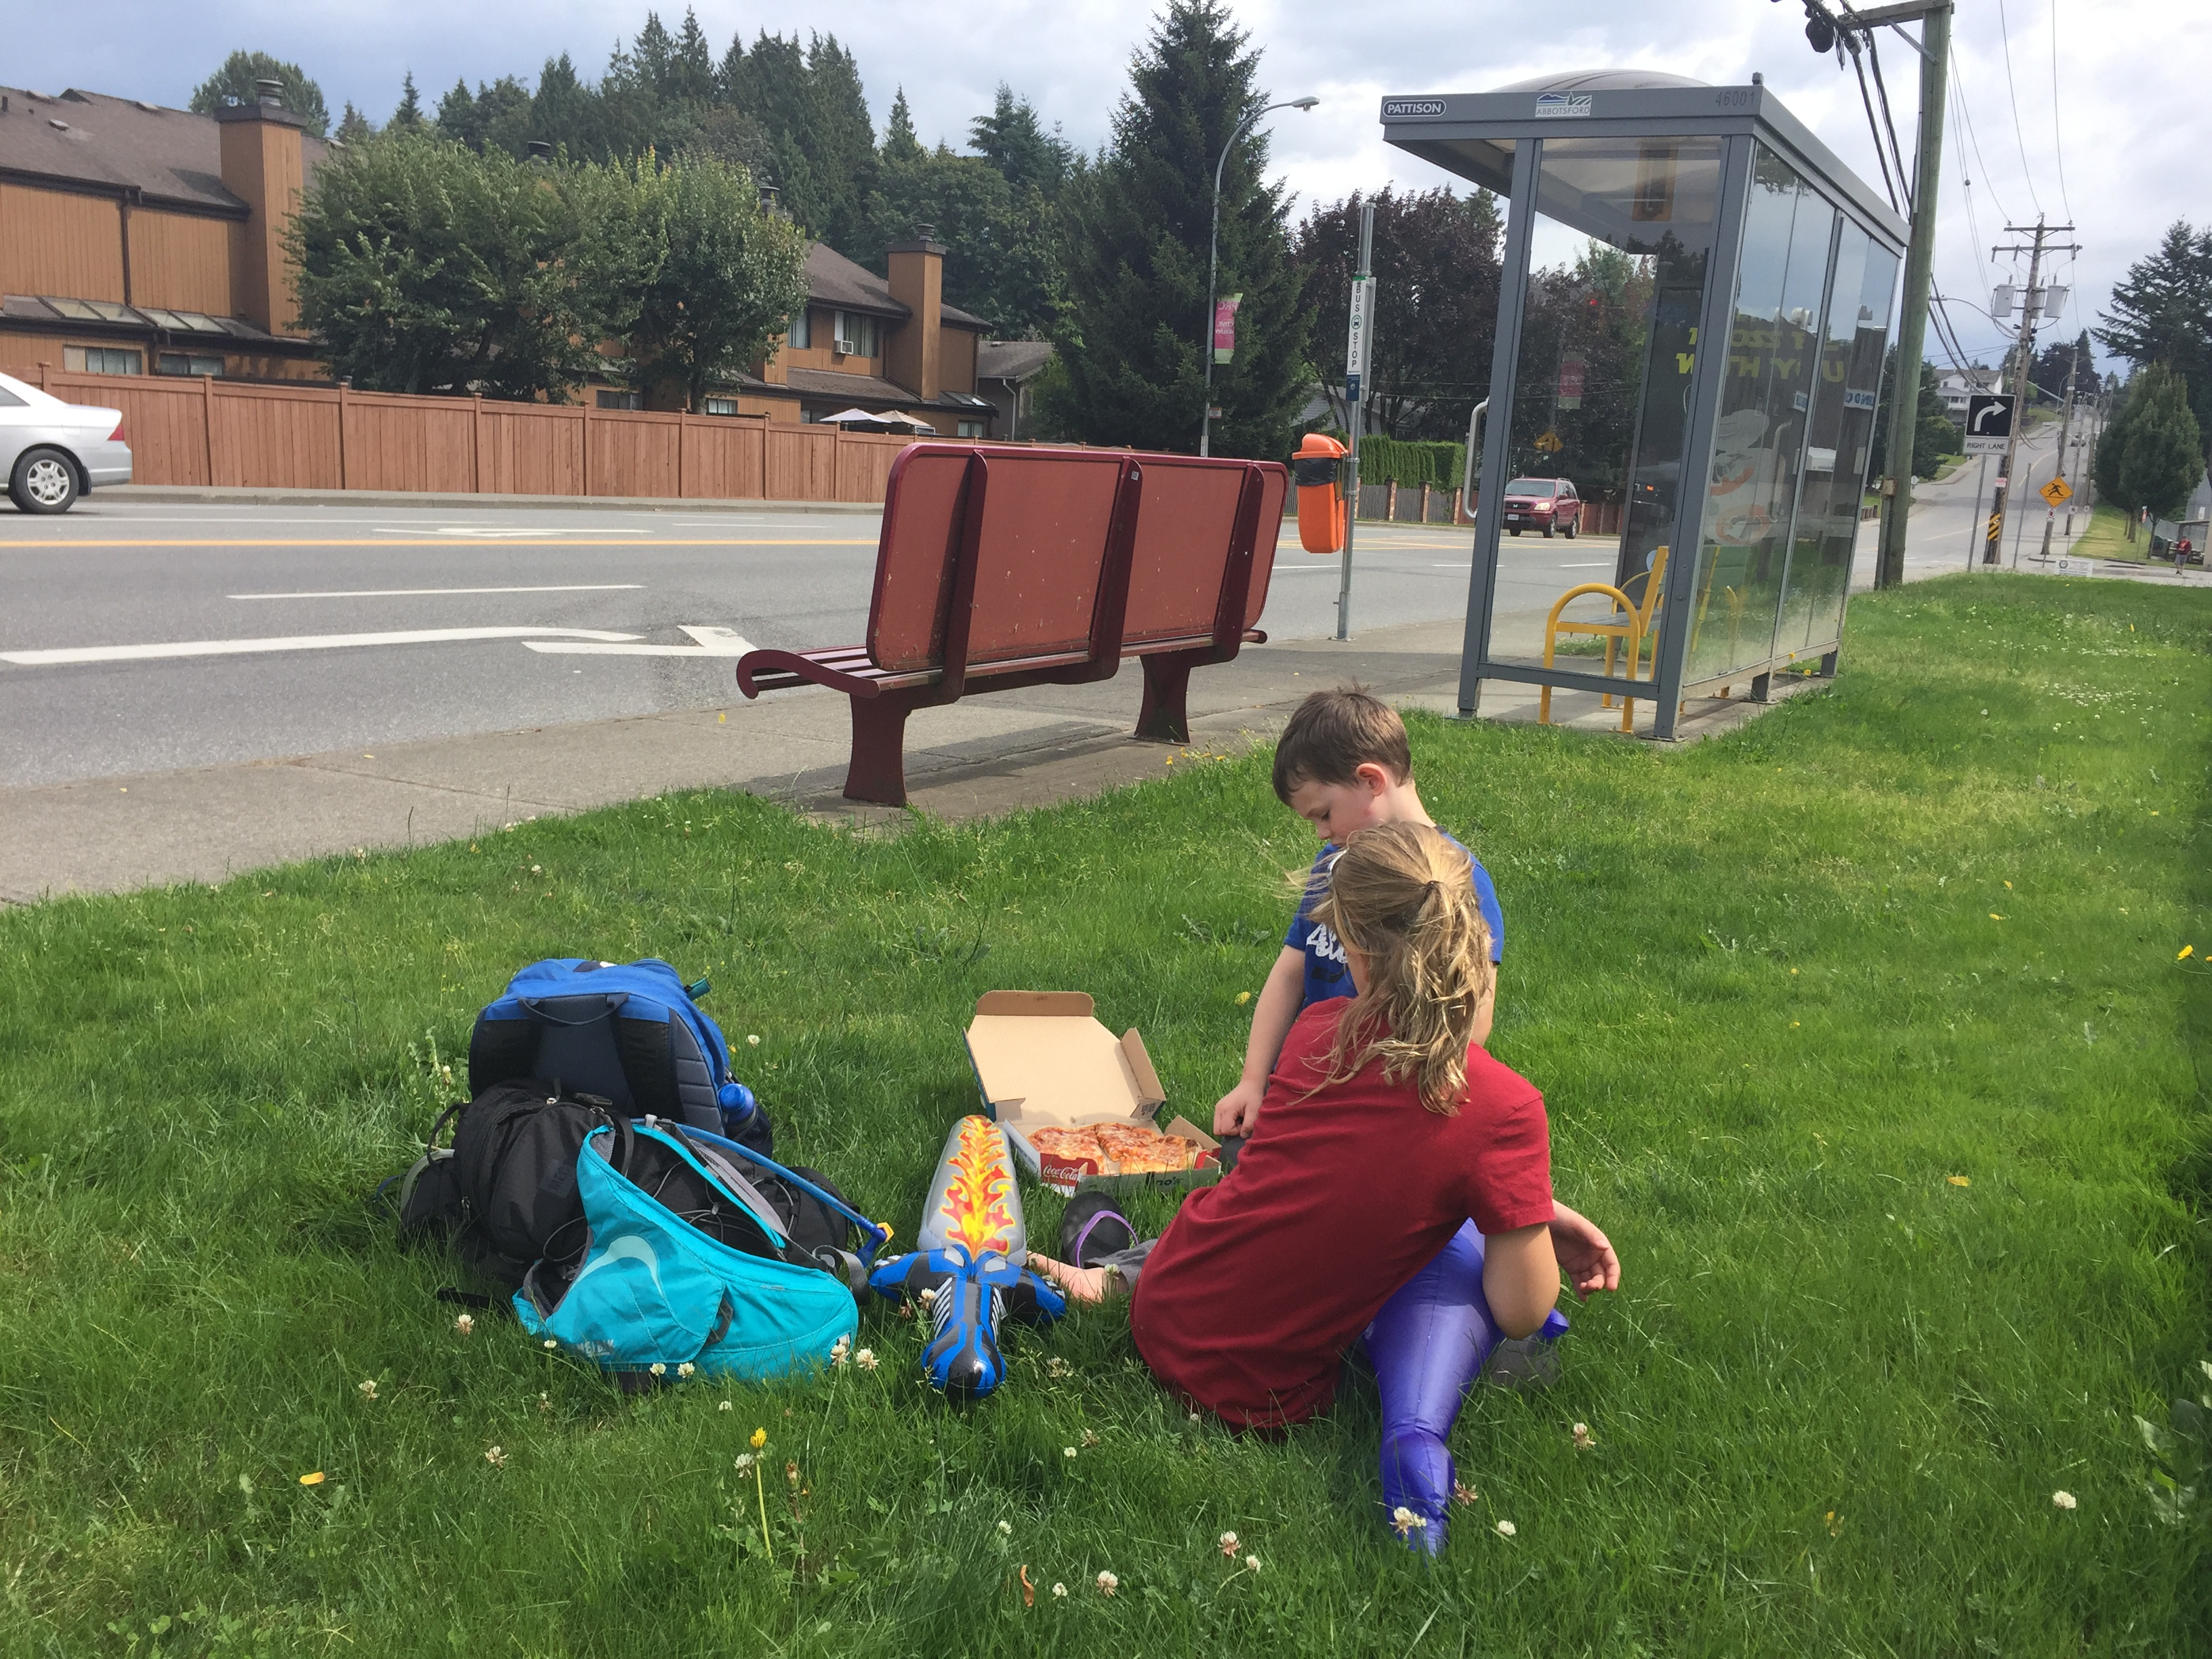 Bus Stop Lunch Time with #ExploreBCbyBus